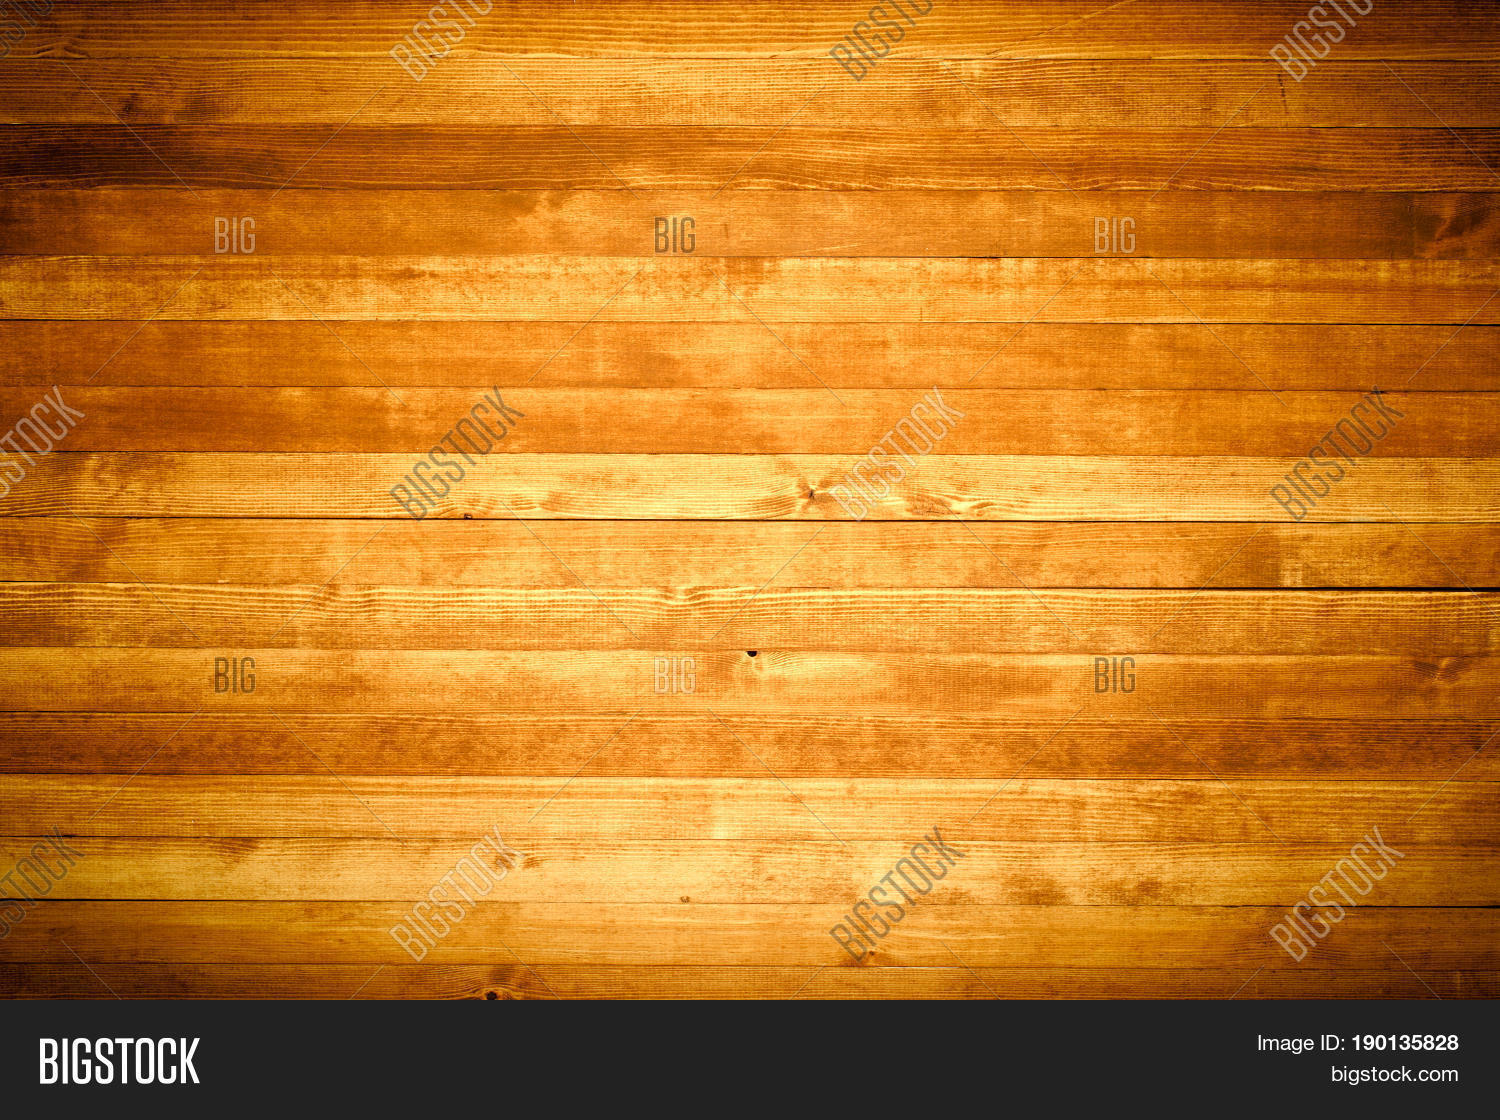 Dinner table background - Large Dinner Empty Wood Table Top Wood Table Texture Background Plank Board Of Wood